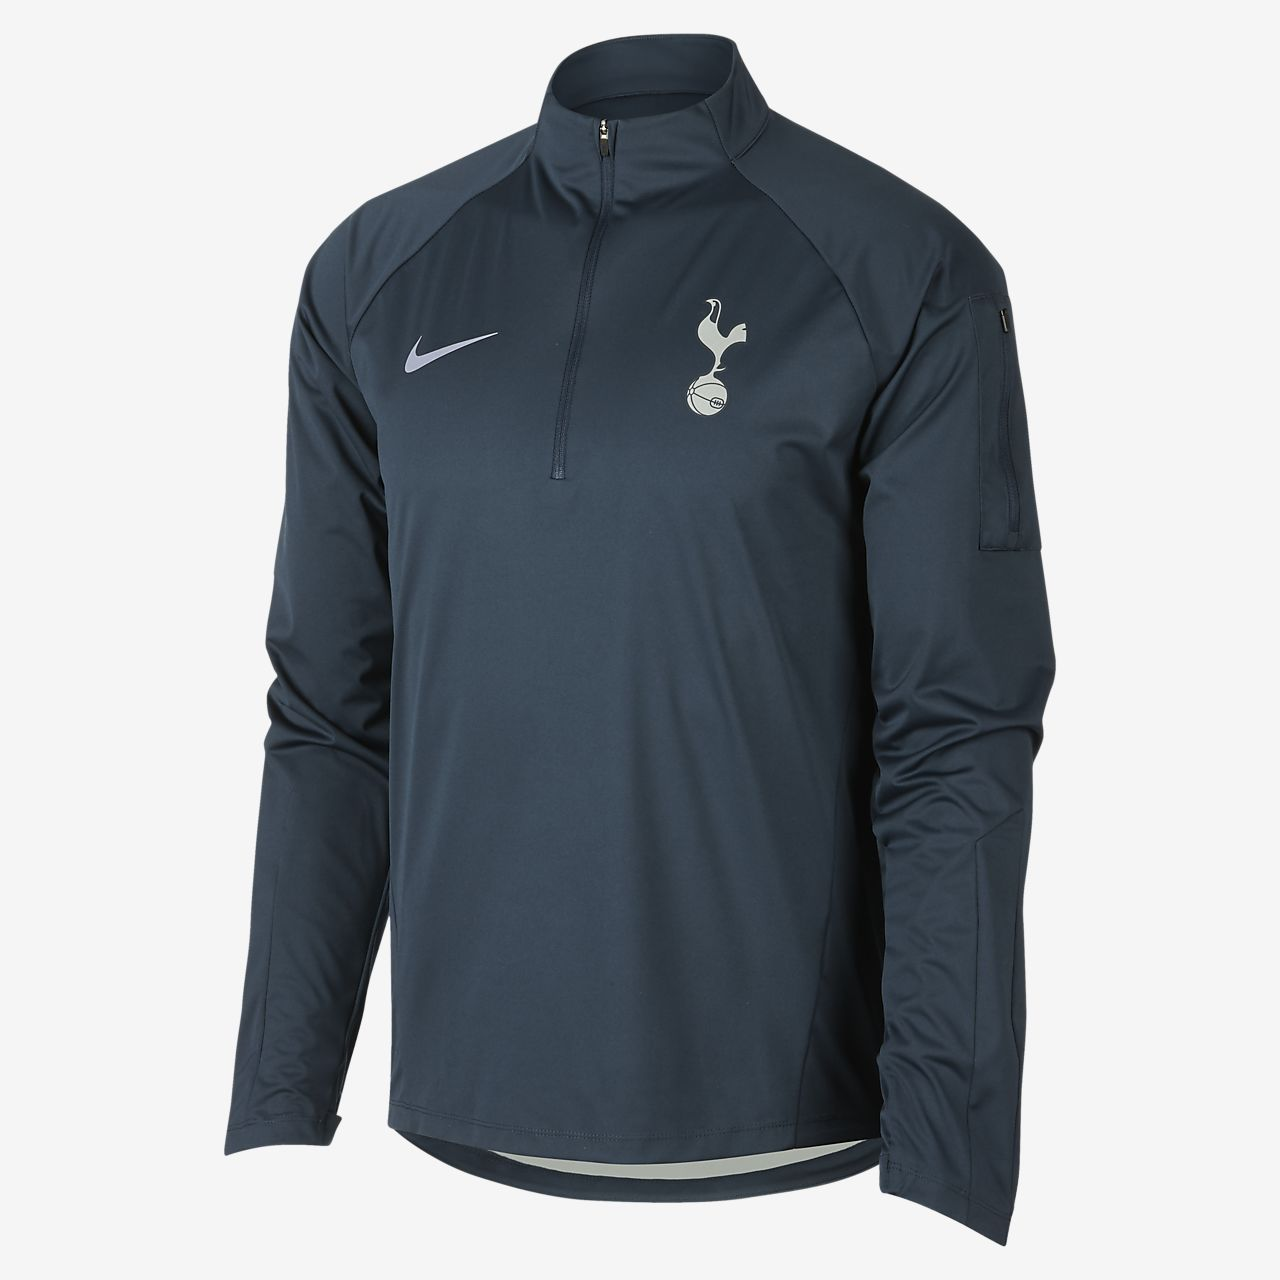 95d47fe8 Nike Shield Tottenham Hotspur Squad Men's Football Drill Top. Nike ...